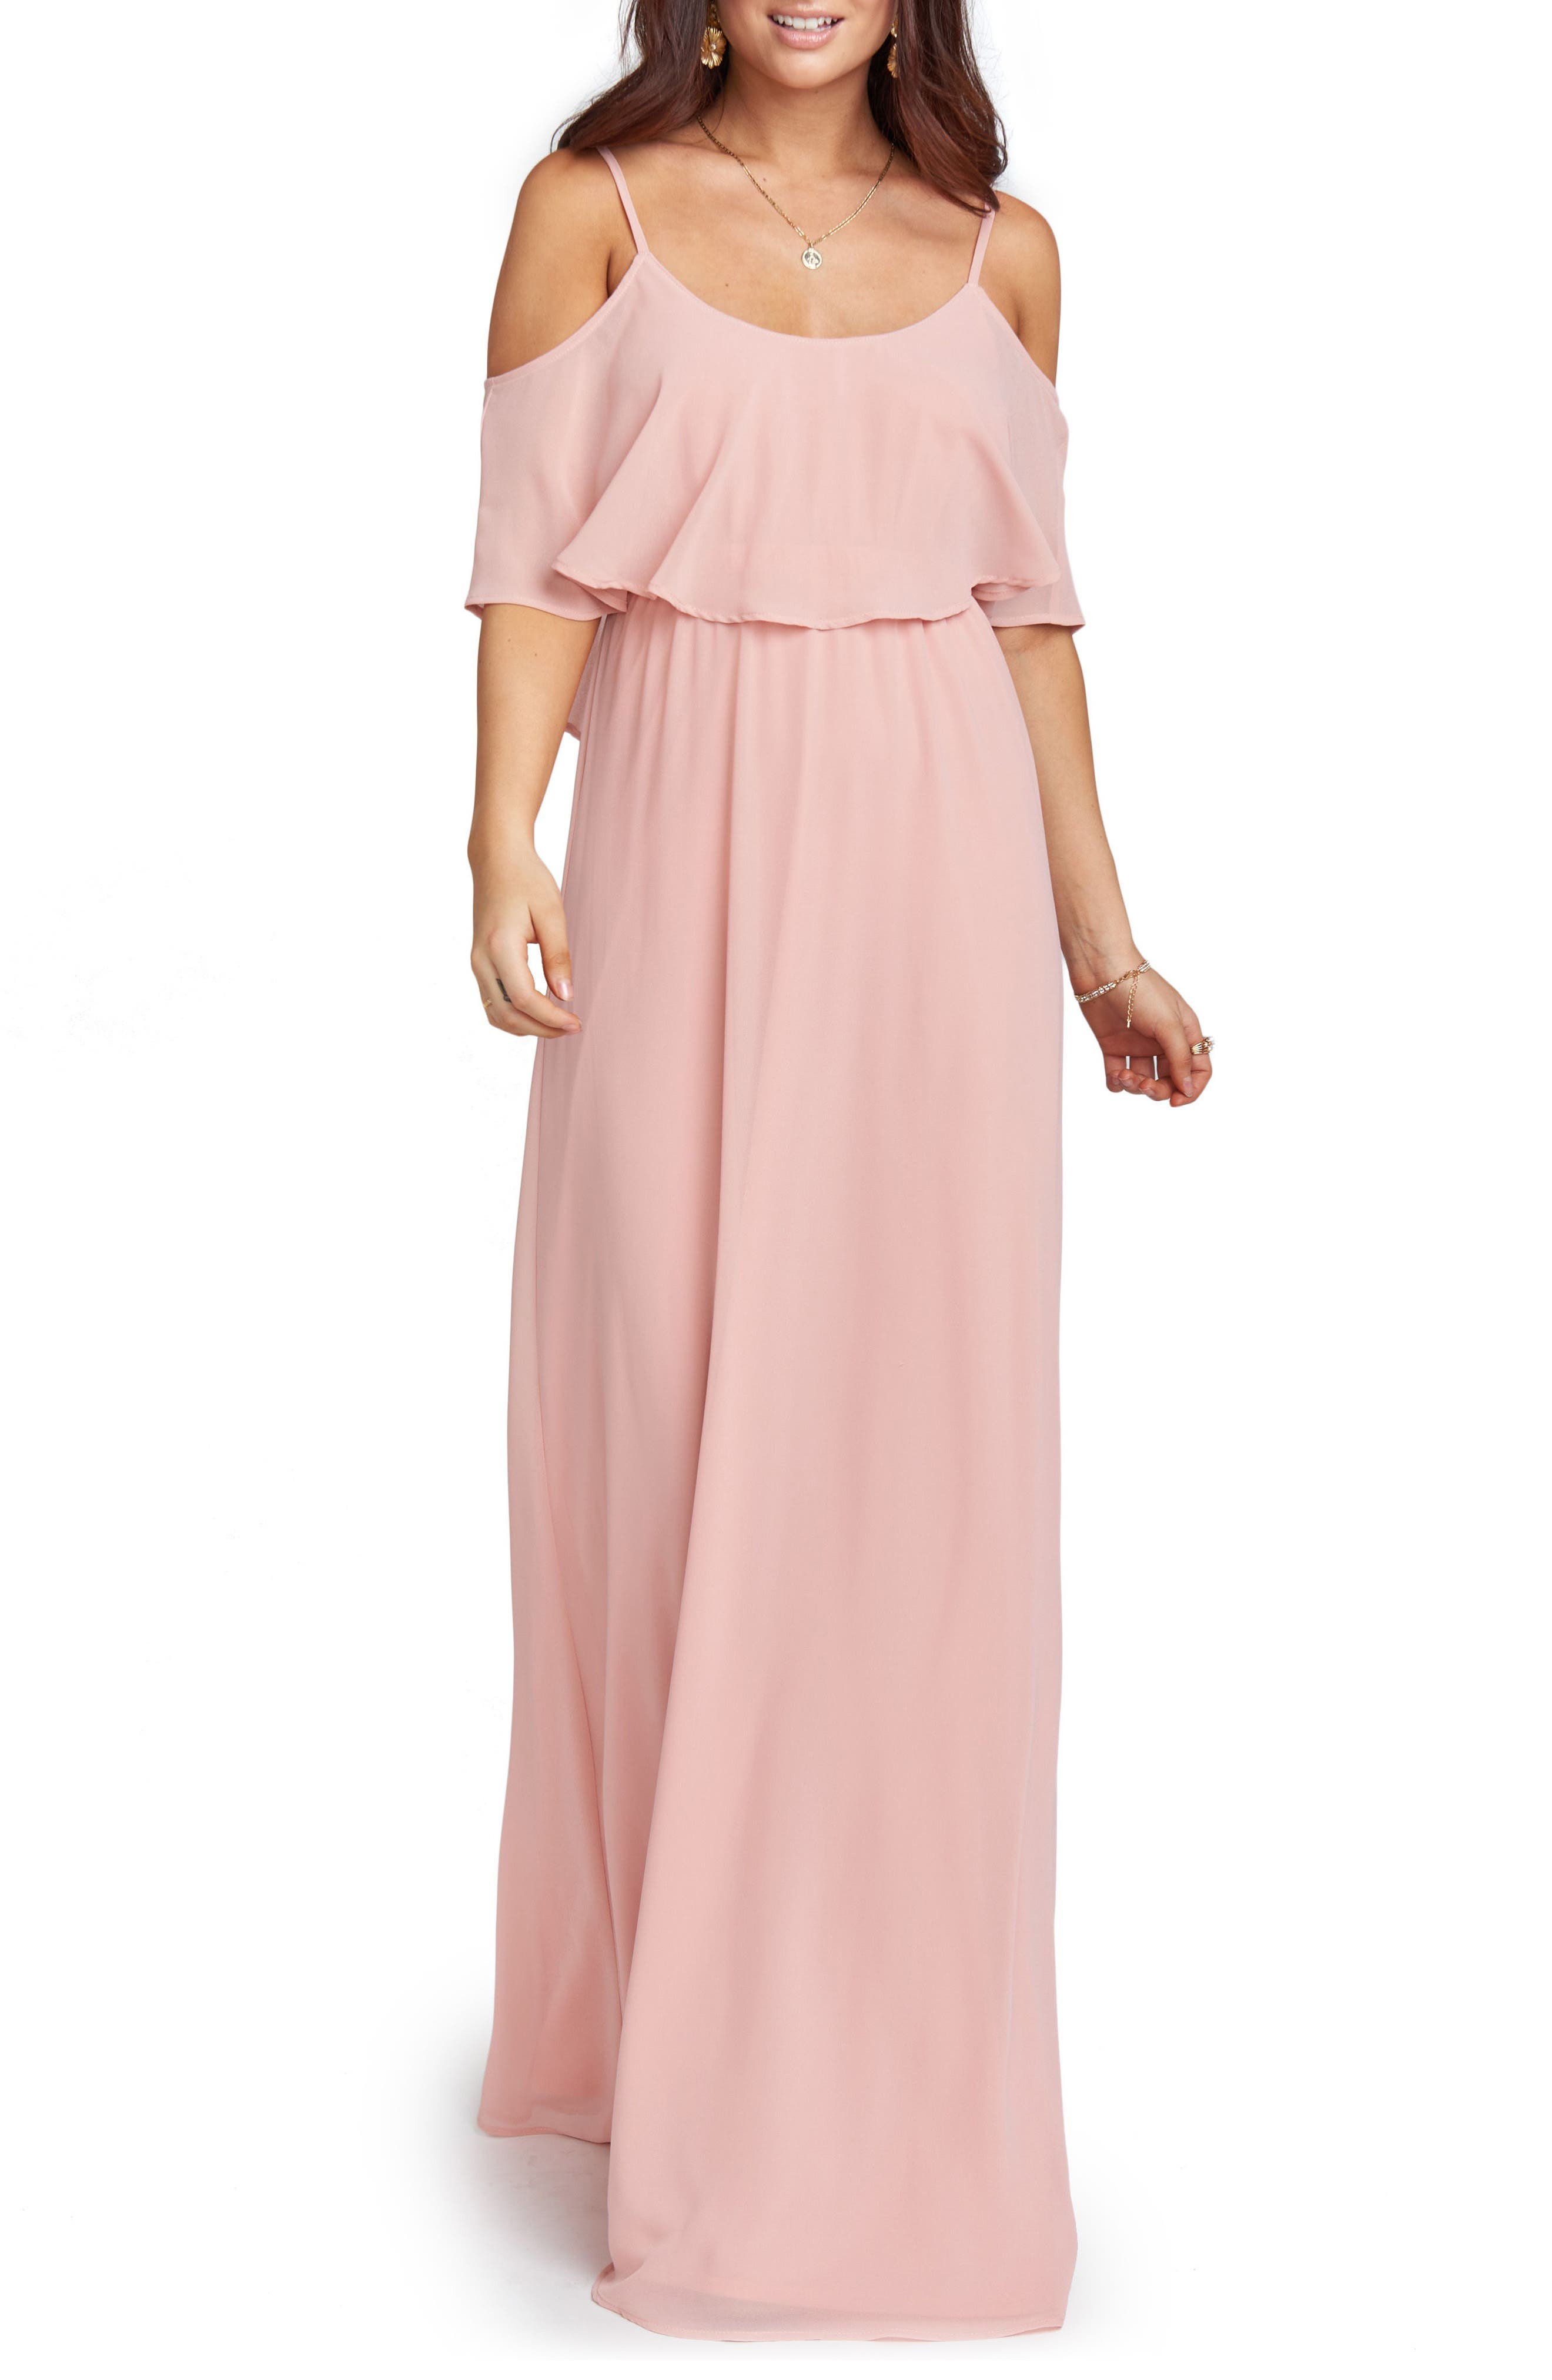 Caitlin Cold Shoulder Chiffon Gown,                         Main,                         color, ROSEBUD CHIFFON